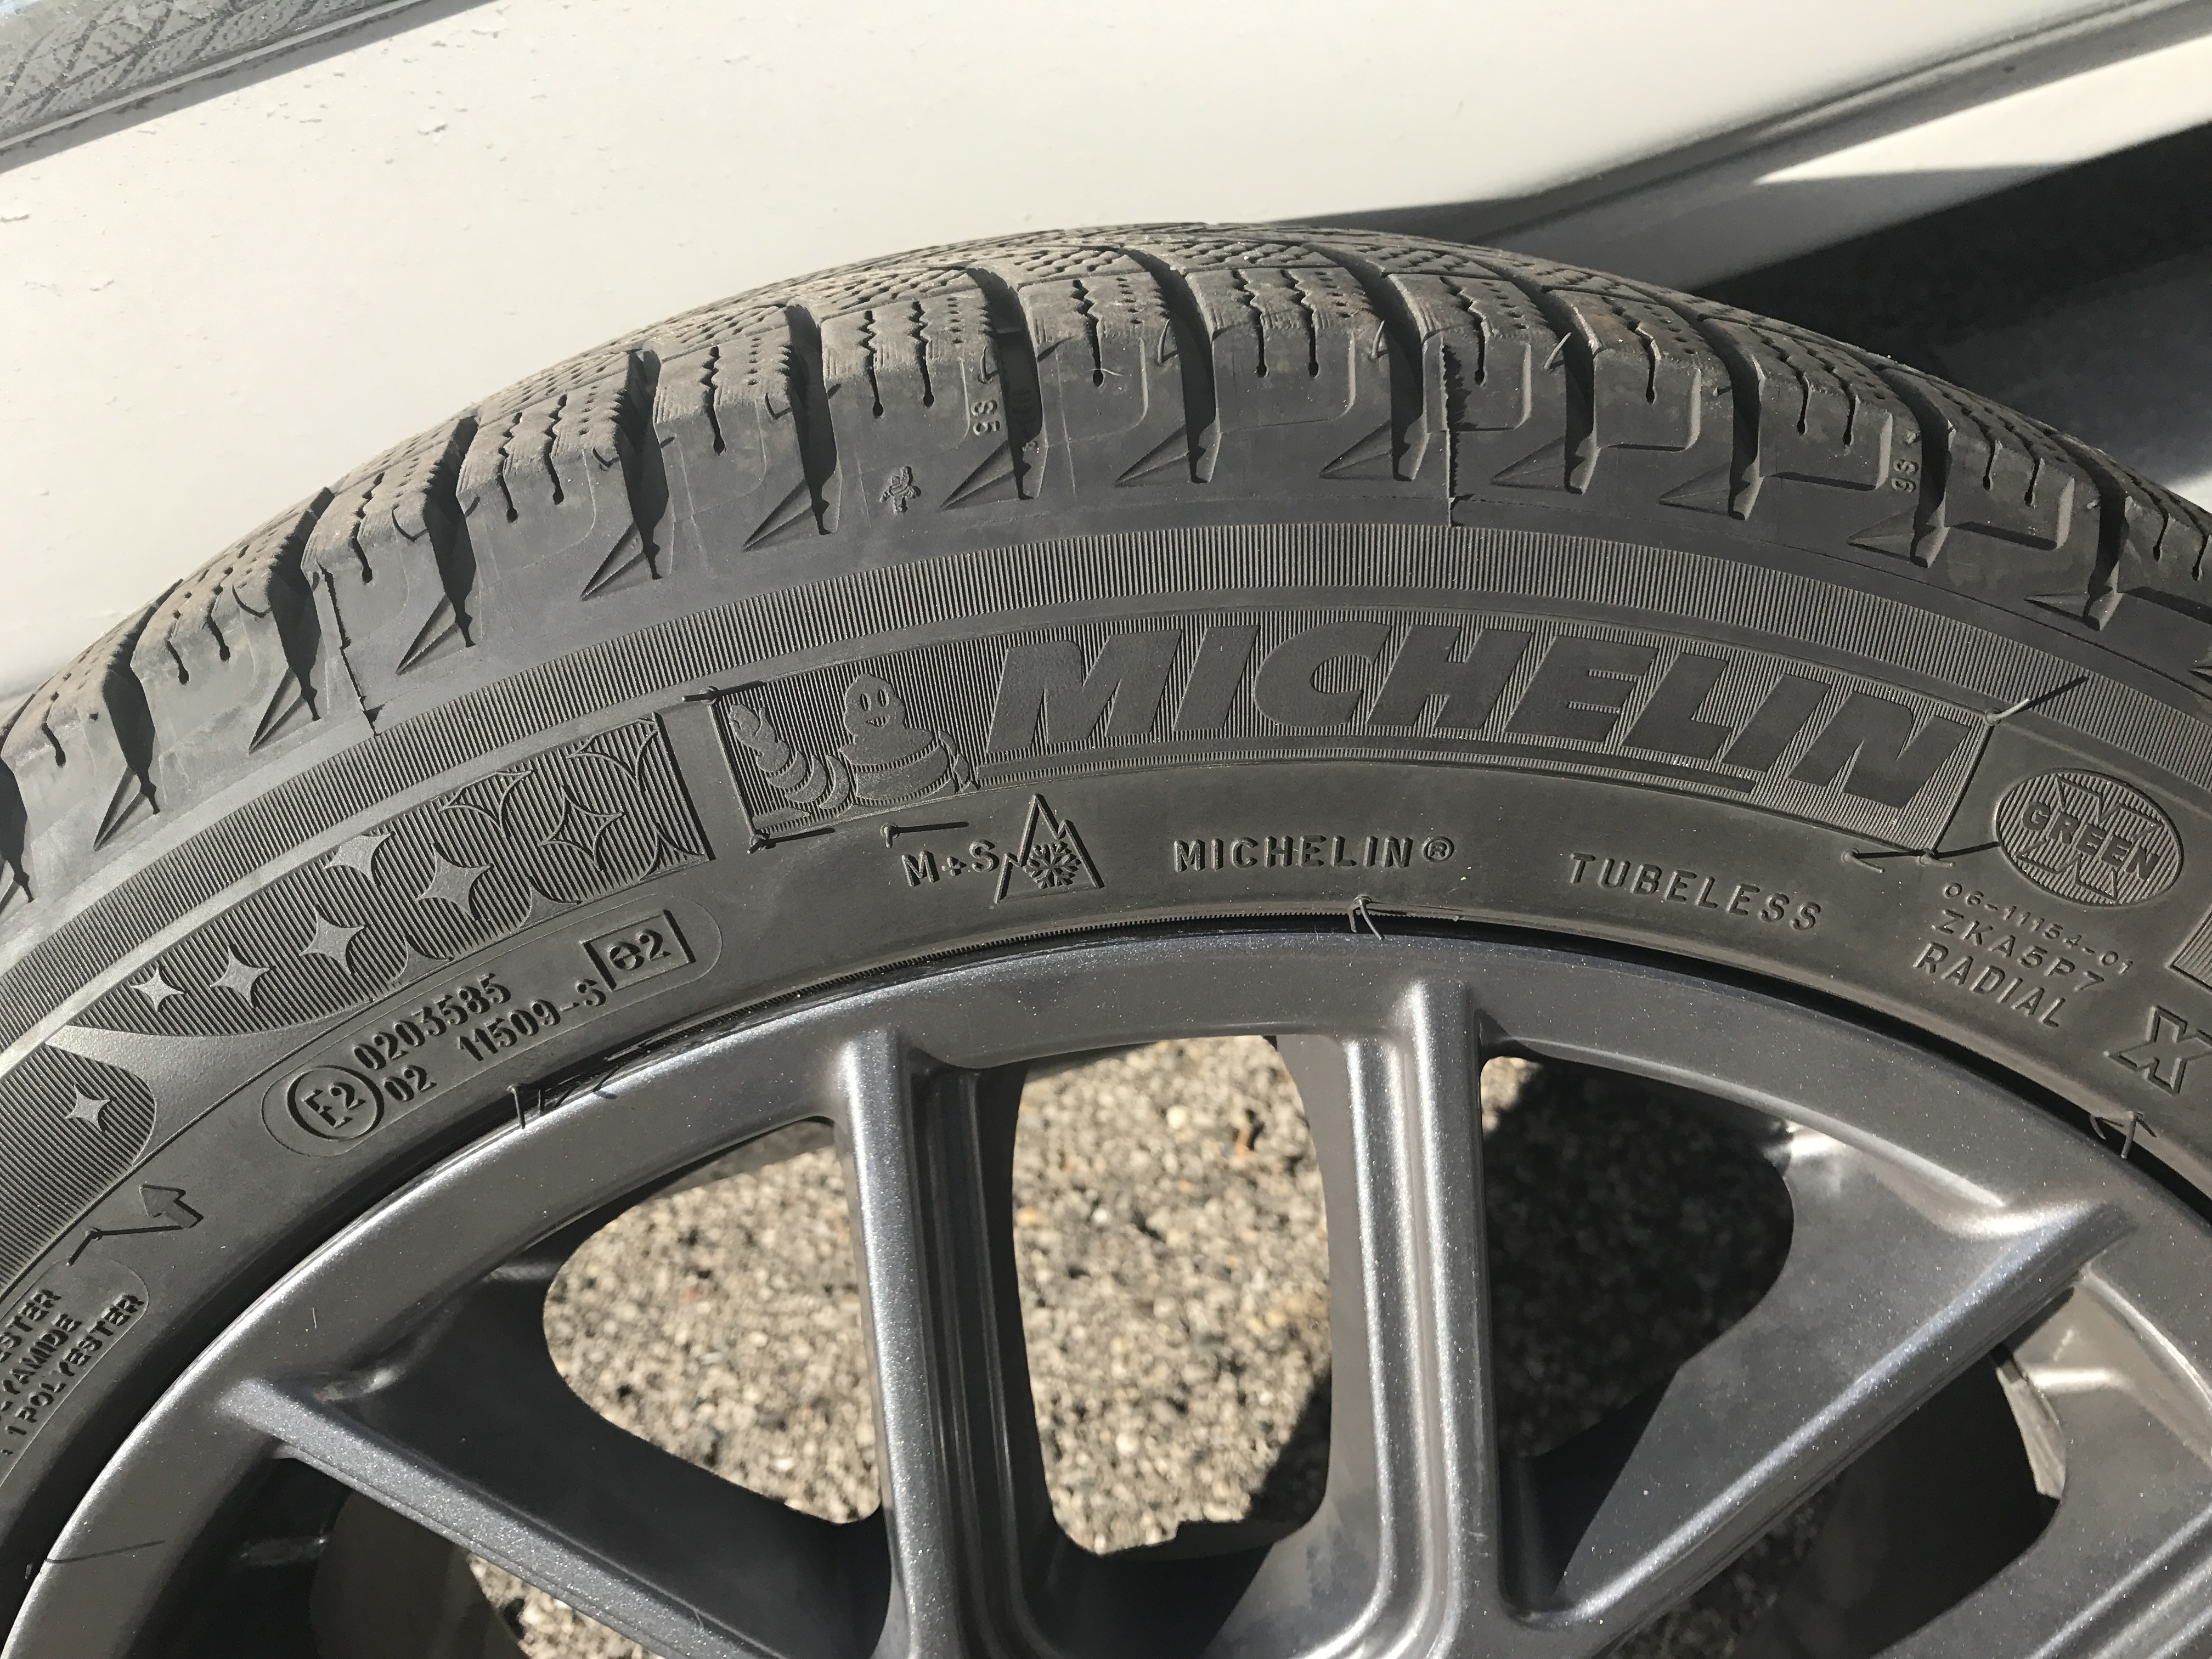 Dating michelin tires